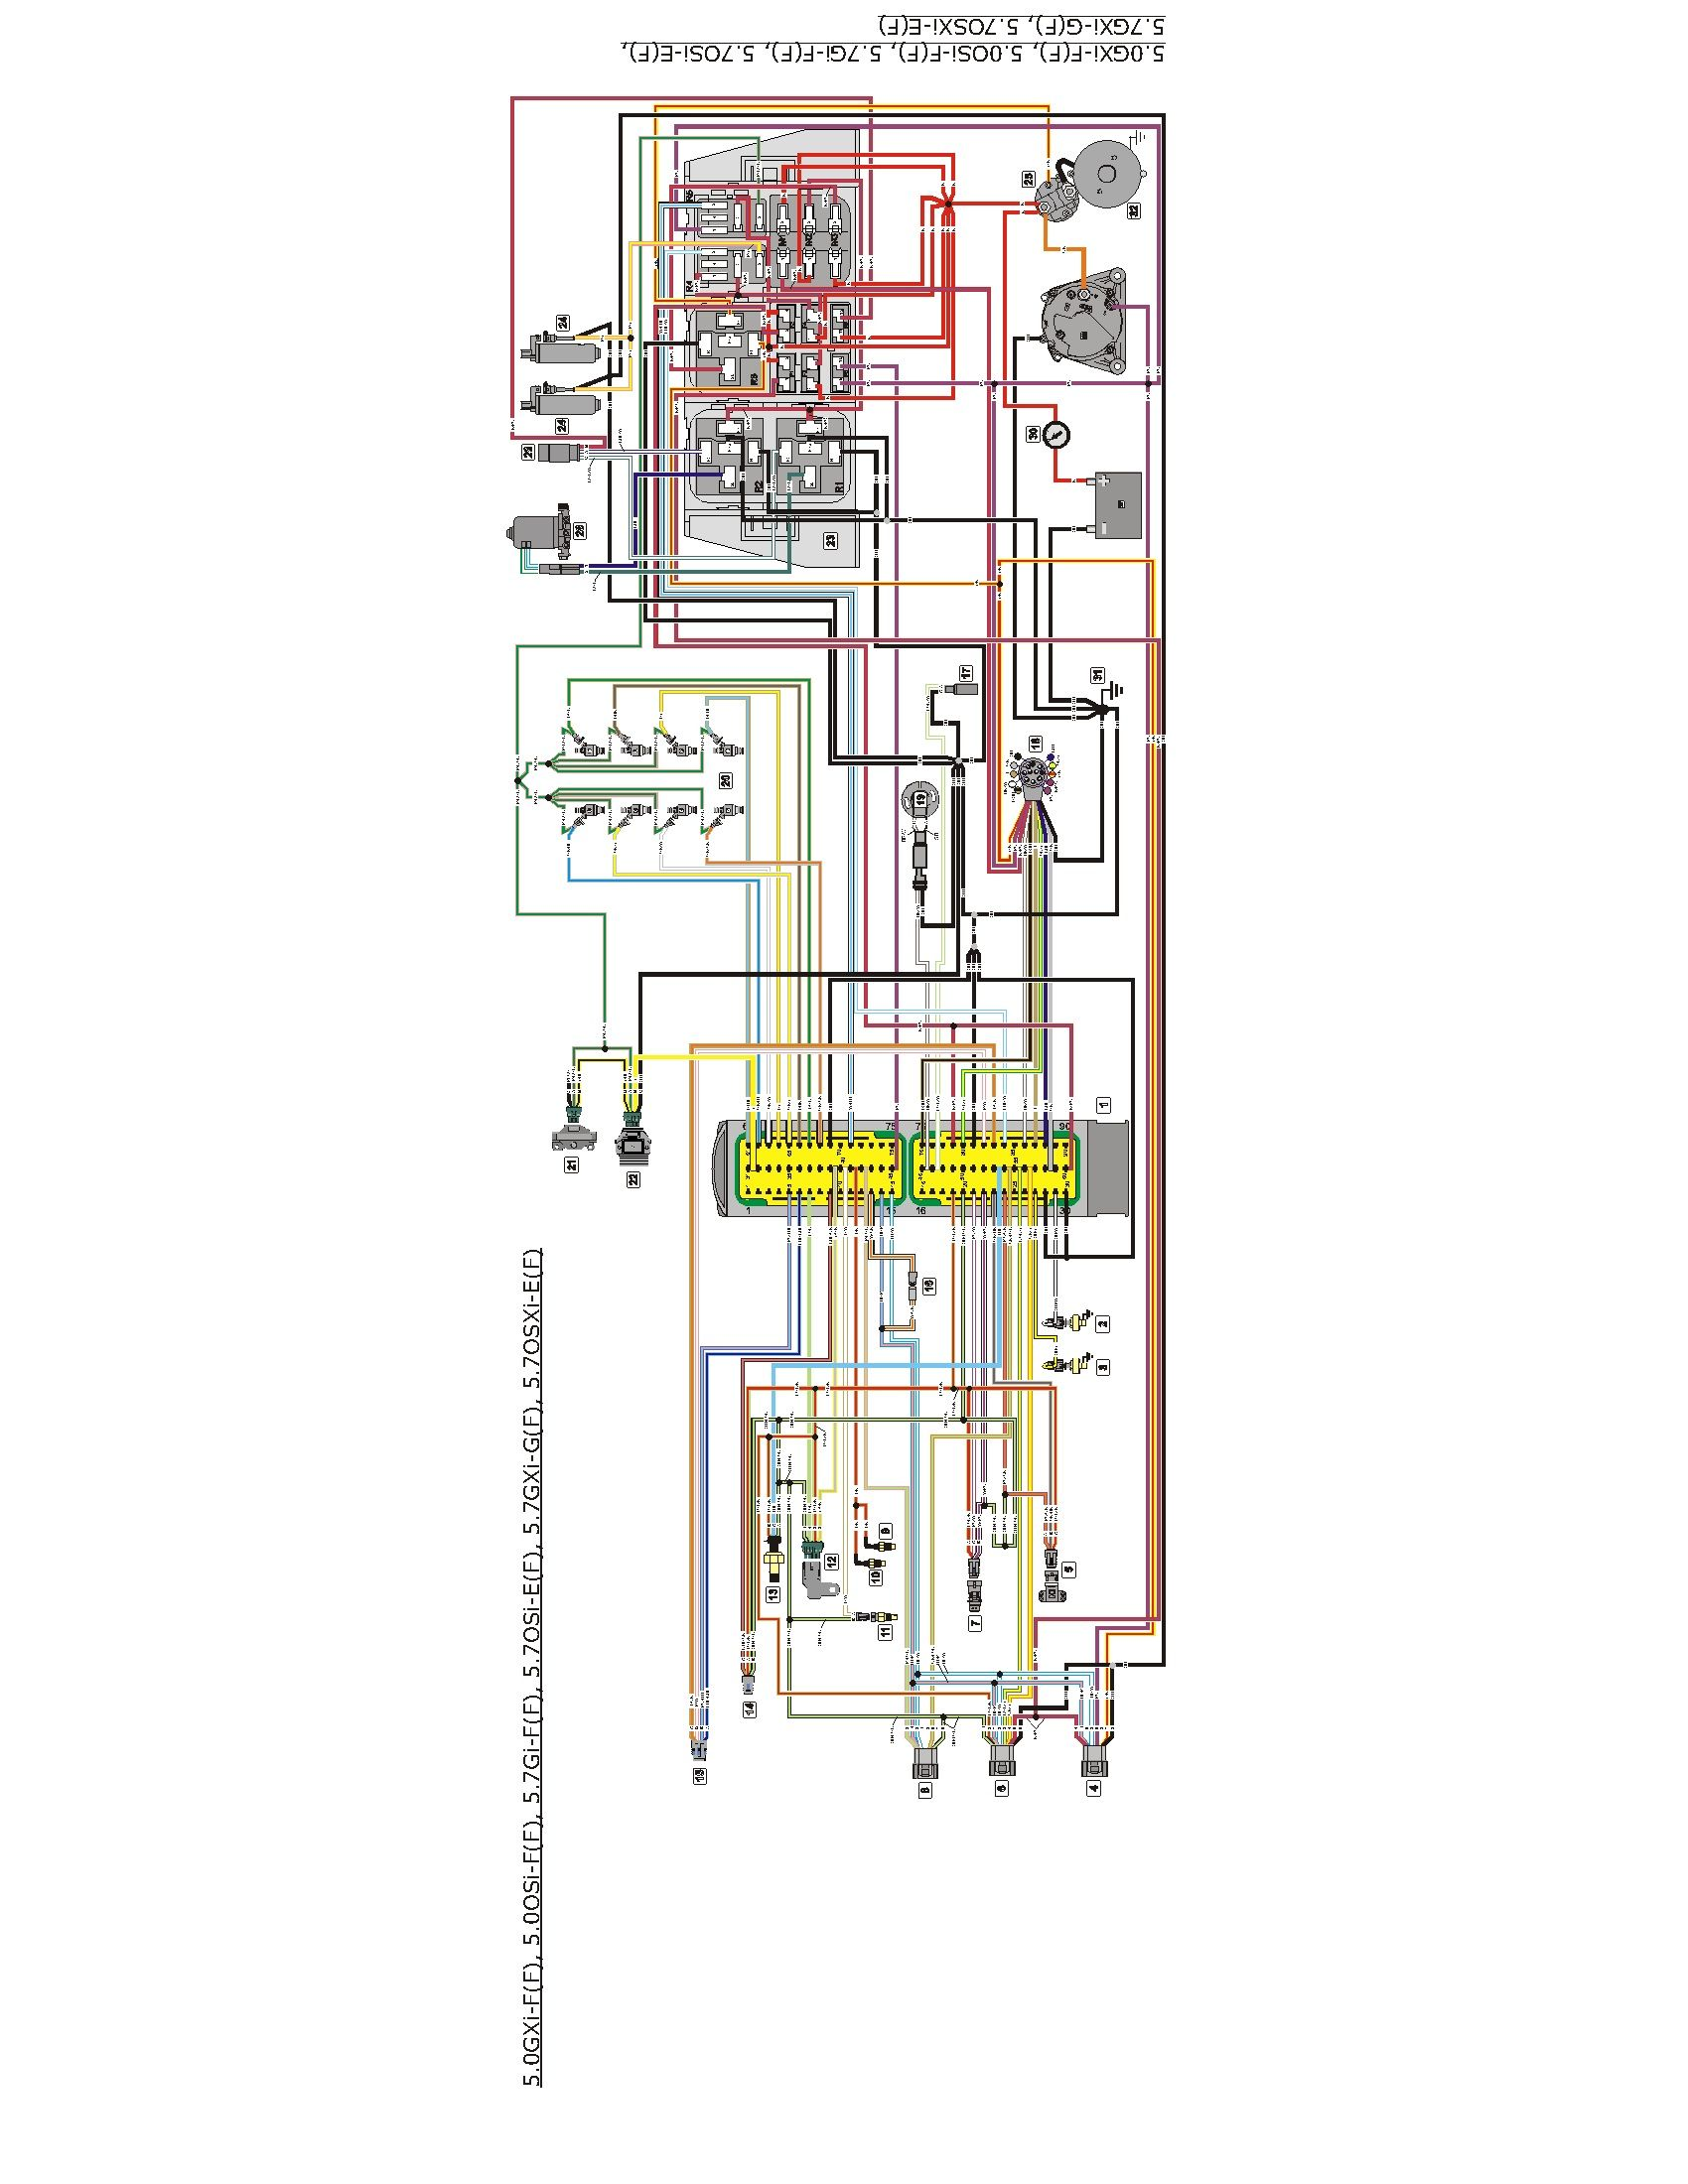 volvo penta 5 7 engine wiring diagram boat pinterest volvo rh pinterest com beta marine engine wiring diagram crusader marine engine wiring diagram